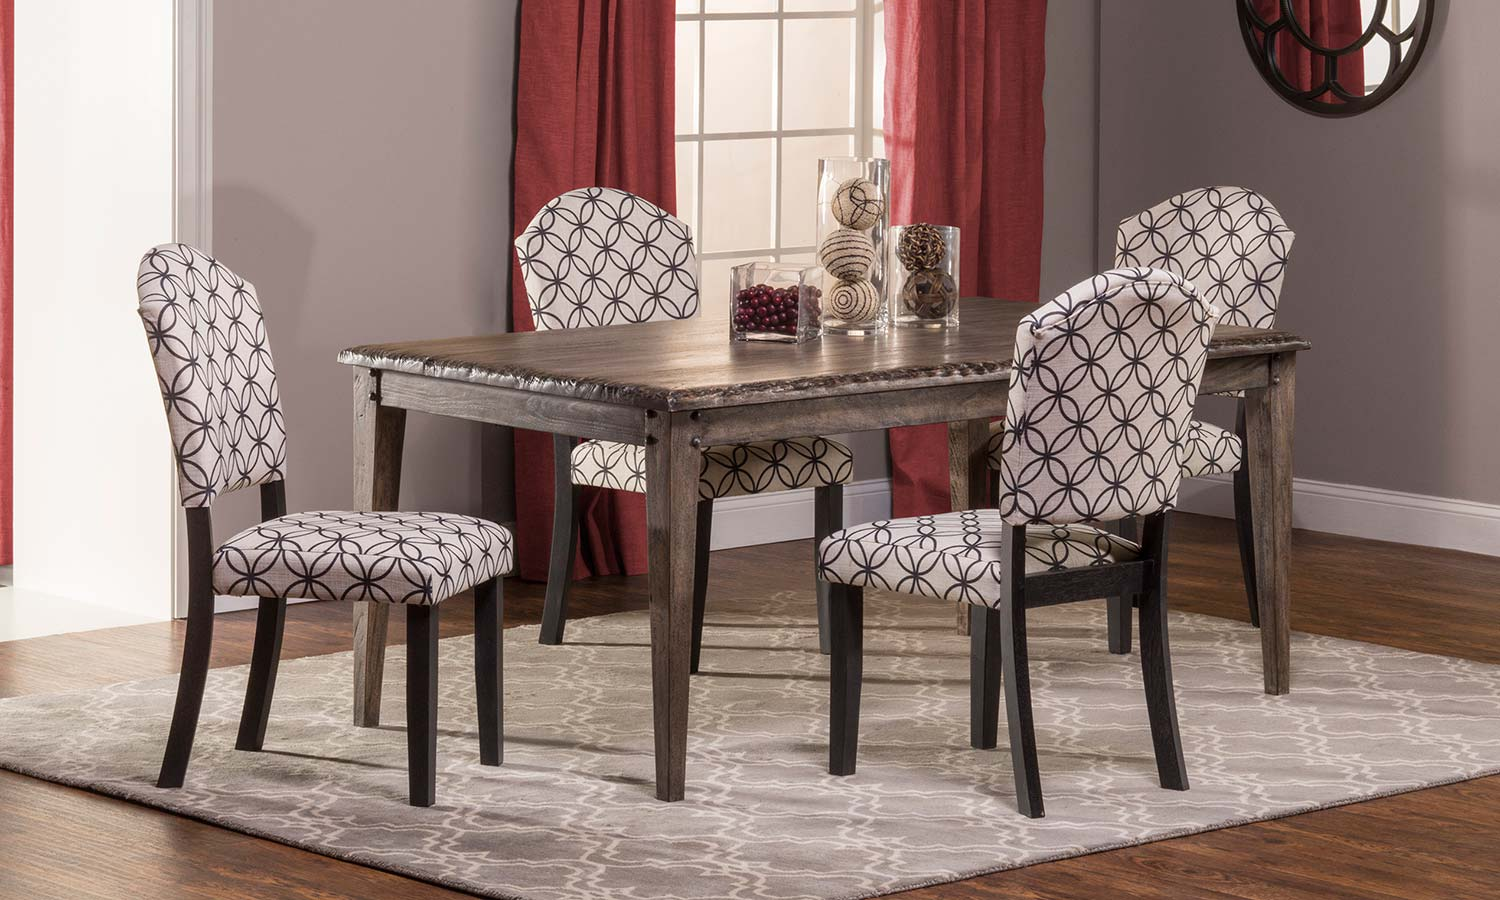 black parsons chair covers for cheap hillsdale lorient 5 pc rectangle dining set with washed charcoal gray bristol off white circle pattern